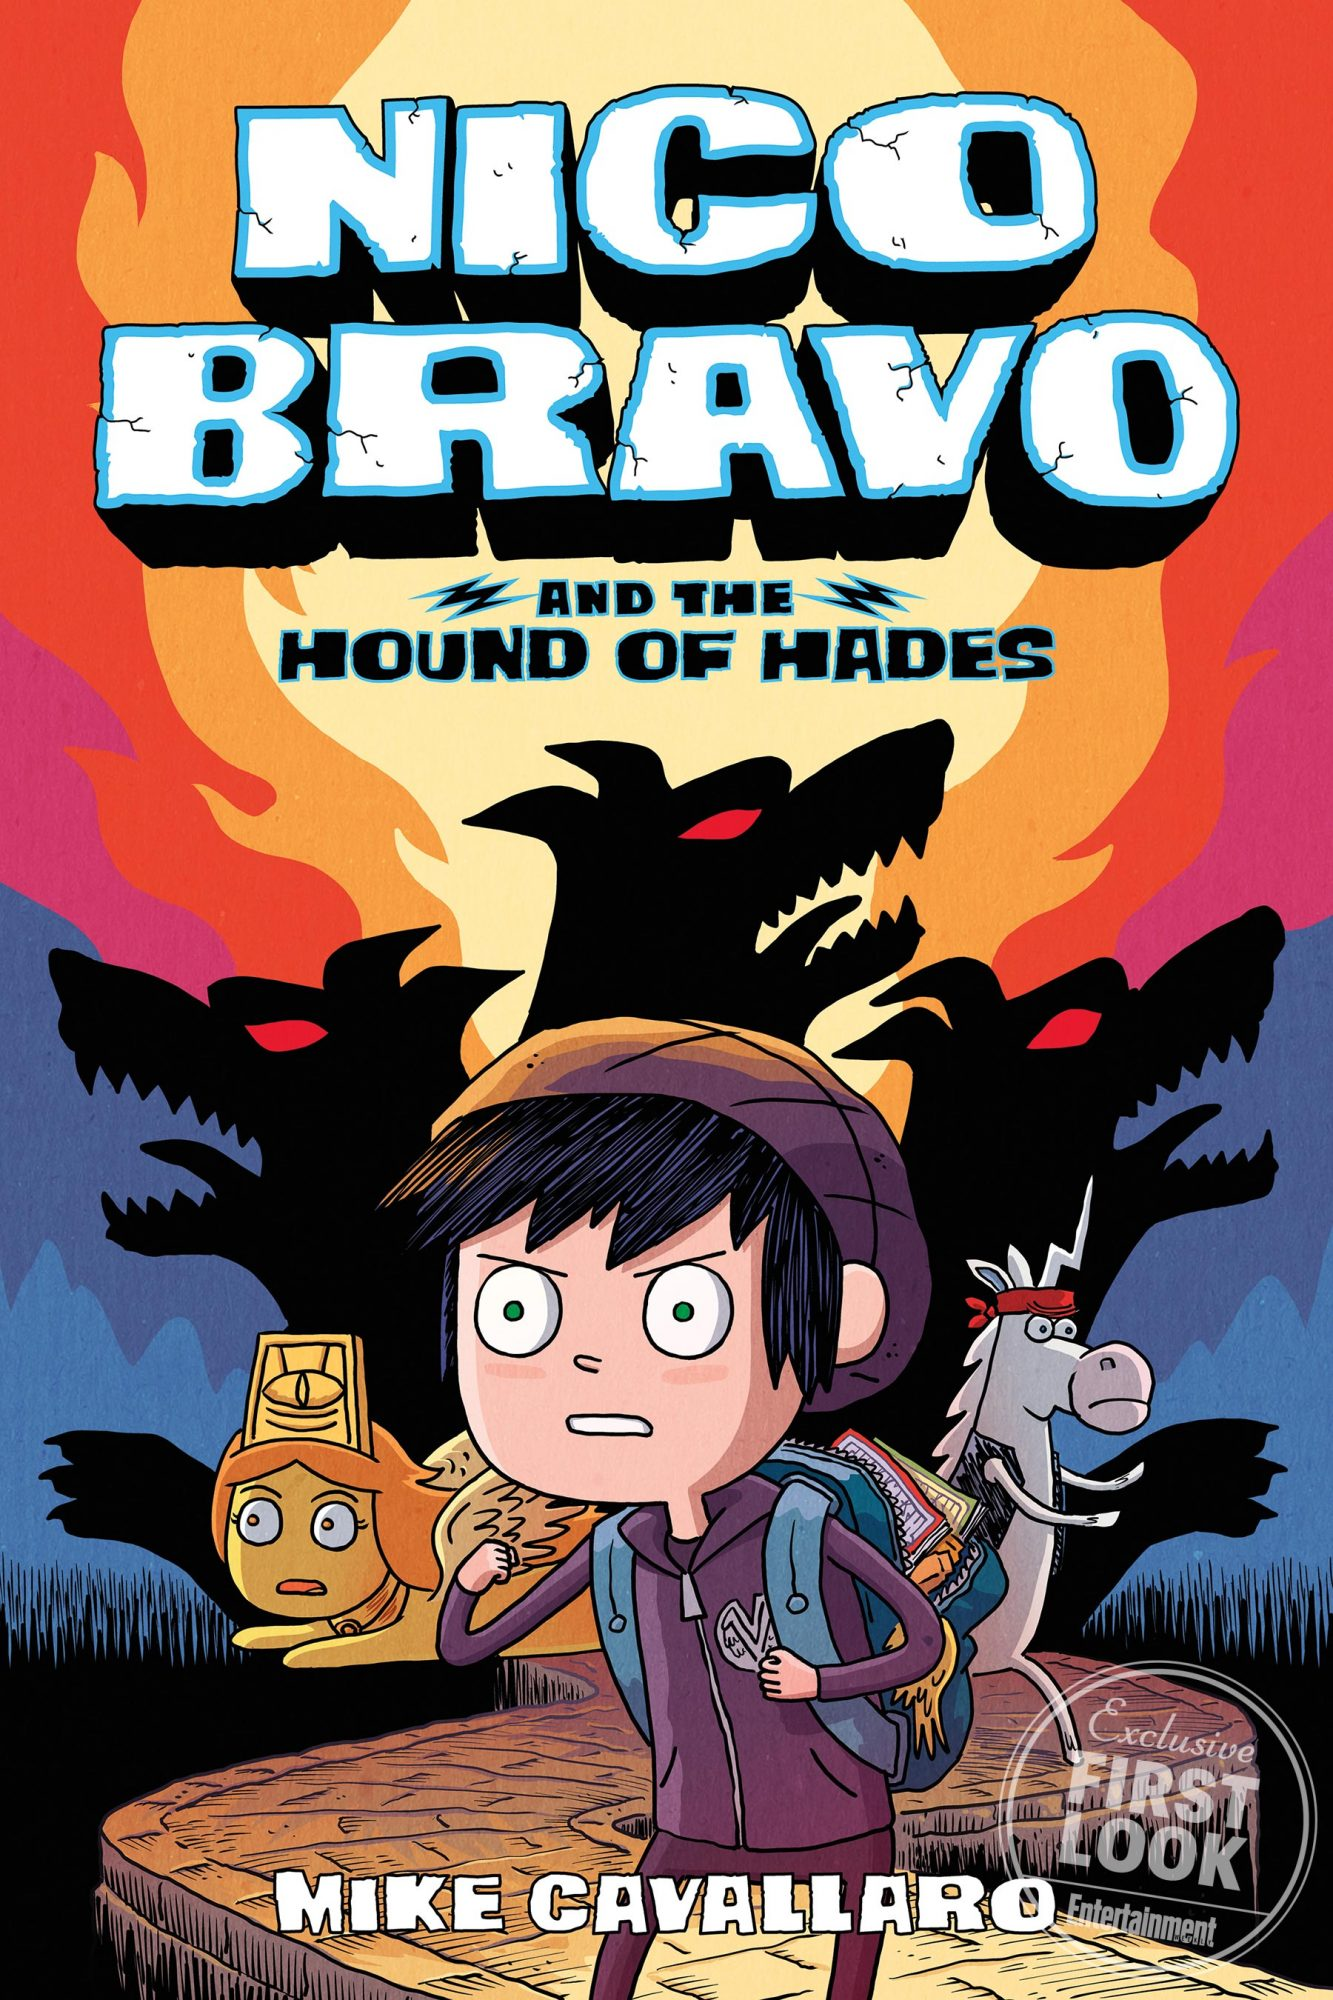 Nico Bravo and the Hound of Hades by Mike Cavallaro (April 23)